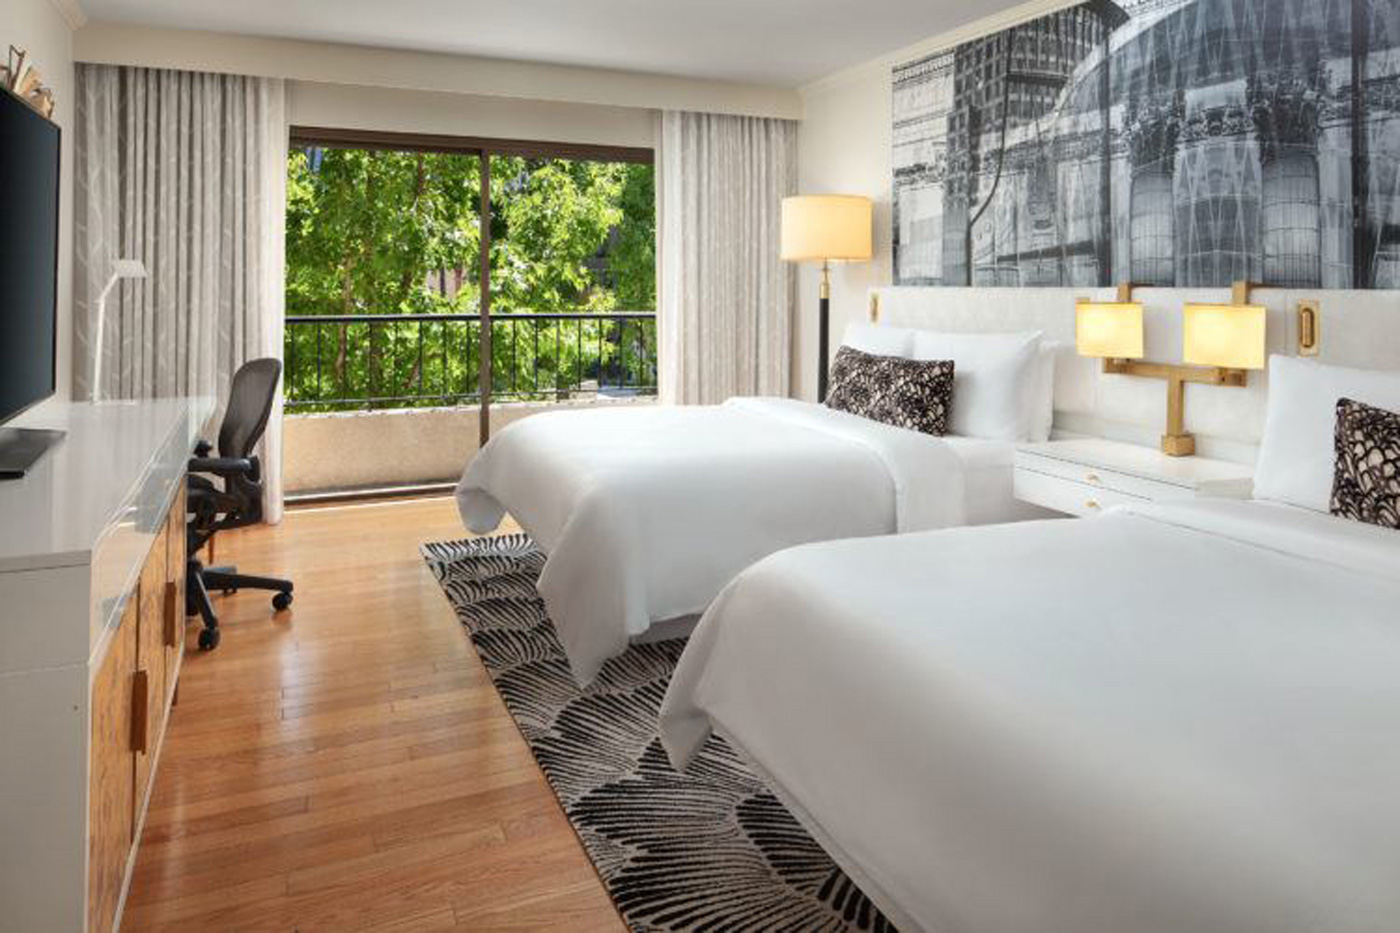 City Style and Living Magazine Summer 2019 Hotels Avenue of the Arts Costa Mesa room inside